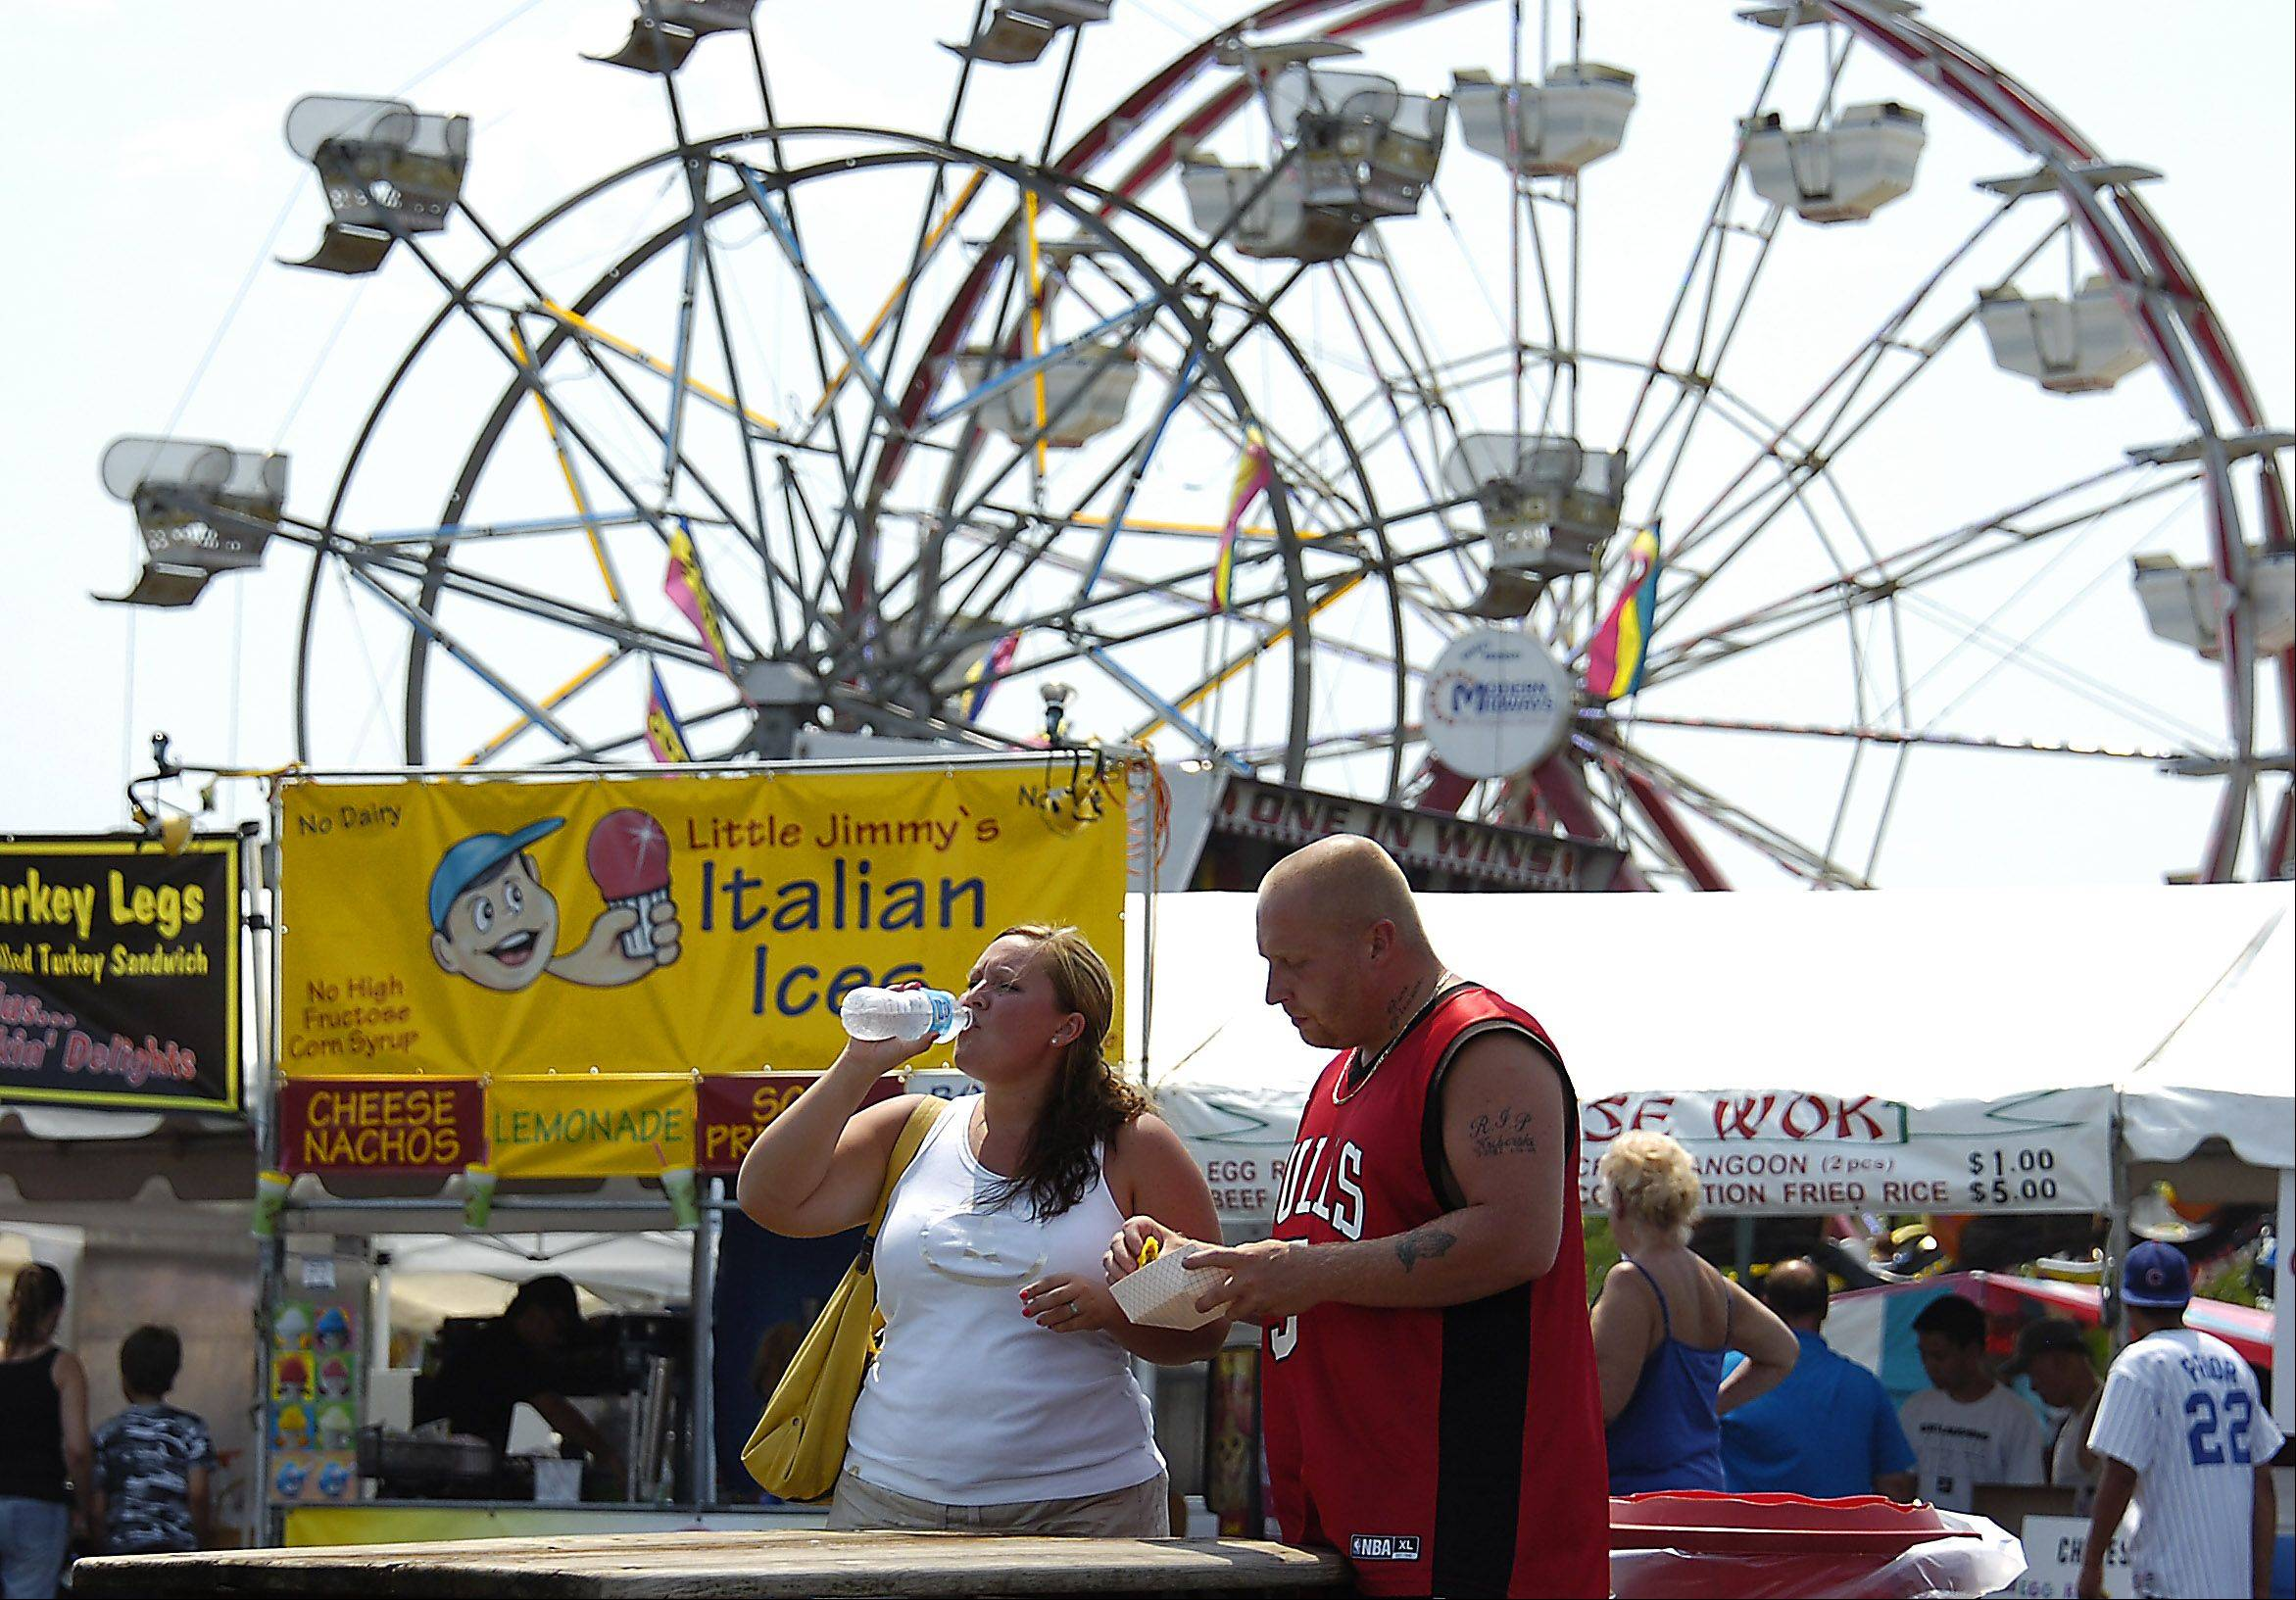 Against a background of ferris wheels Marina McKay gets cool with water while Cruz Rodriguez samples an empanada during the extreme heat at the Northwest Fourth-Fest at the Sears Centre in Hoffman Estates.